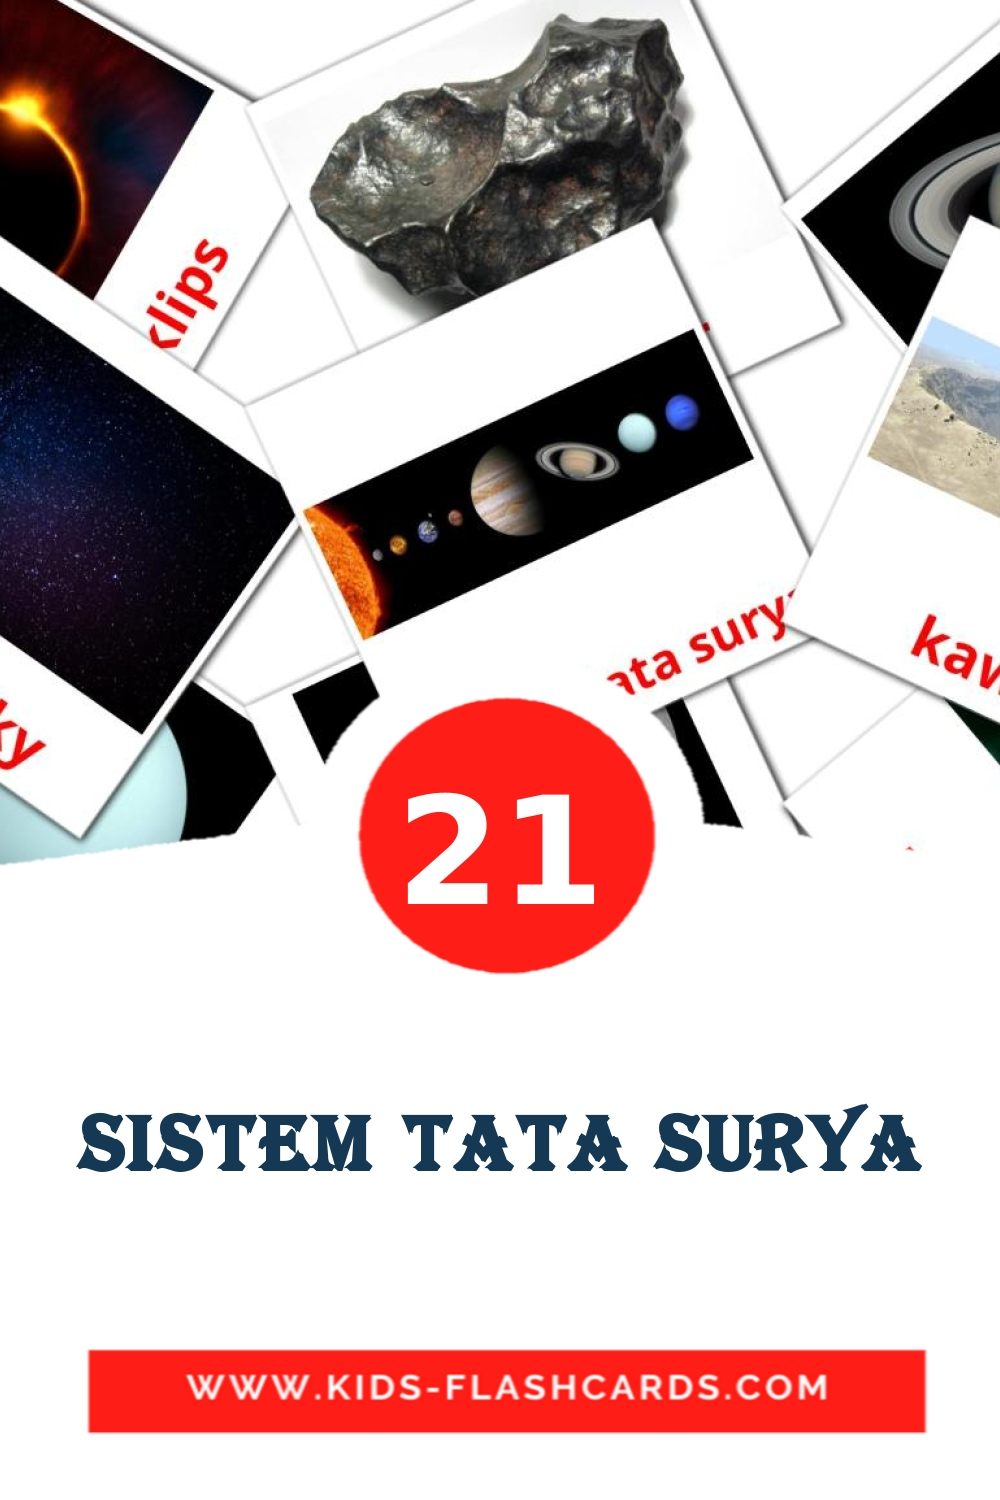 20 Sistem Tata Surya Picture Cards for Kindergarden in indonesian